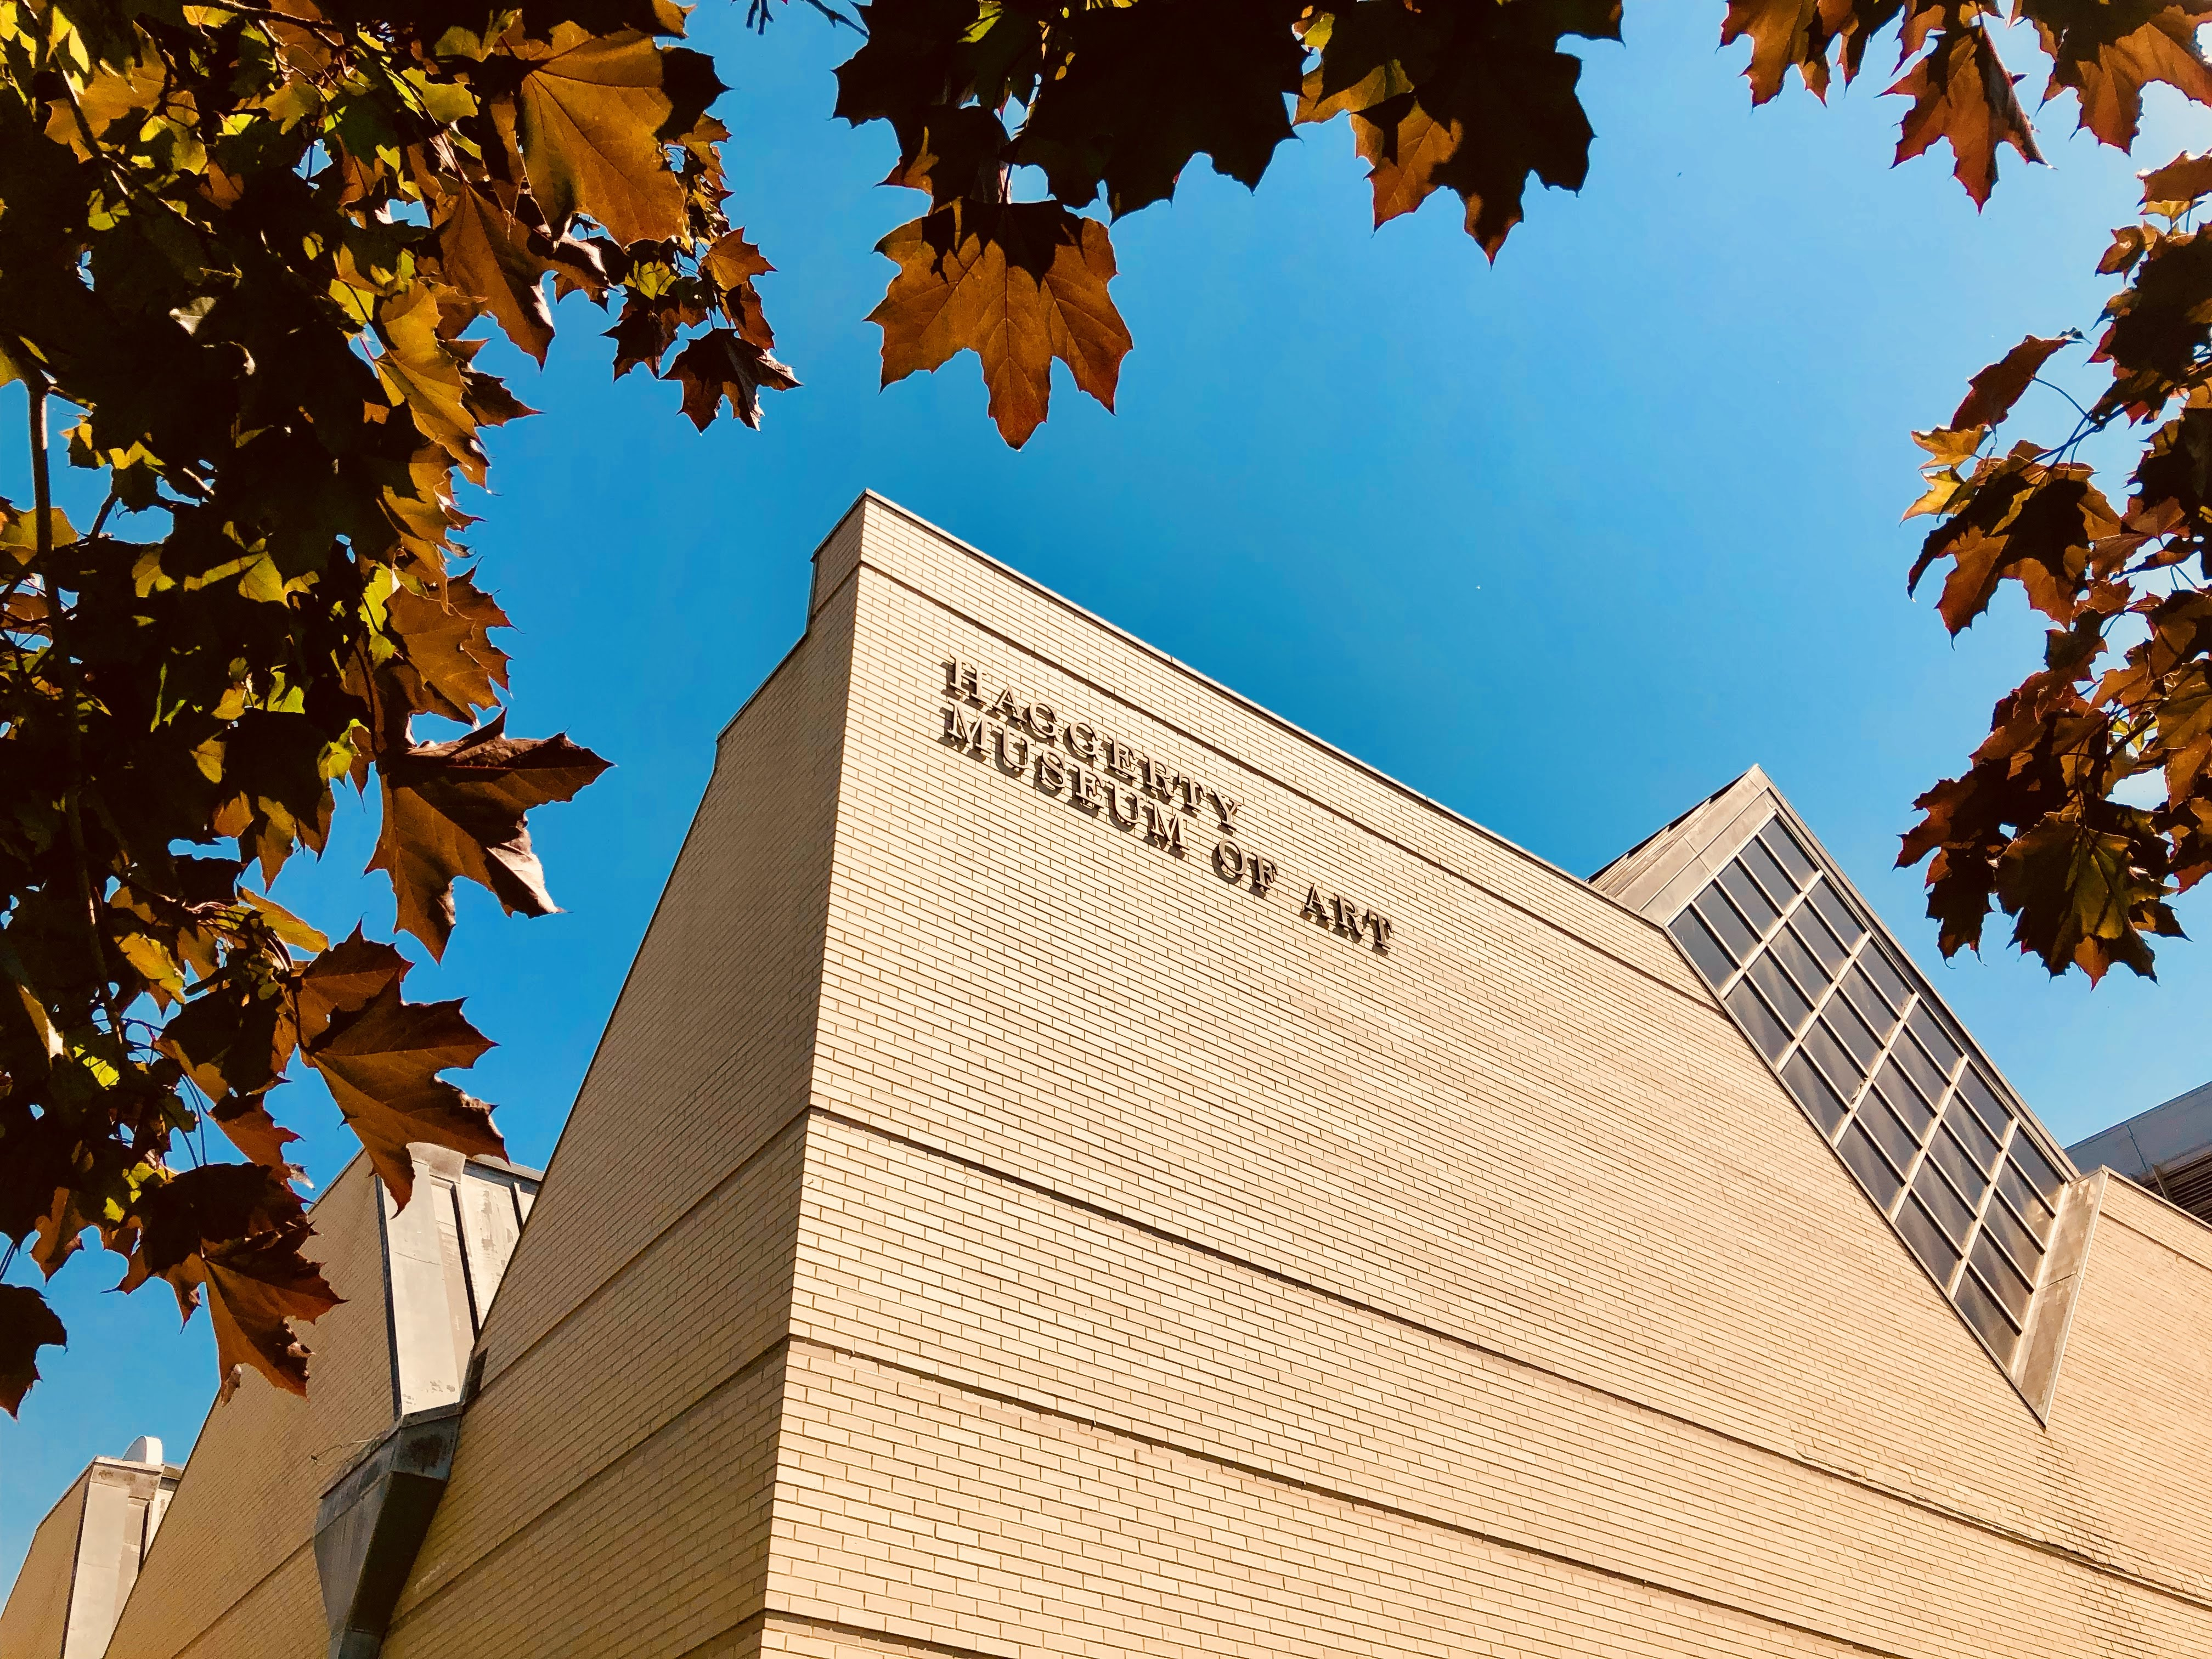 Haggerty Museum of Art Re-Opening to the Public